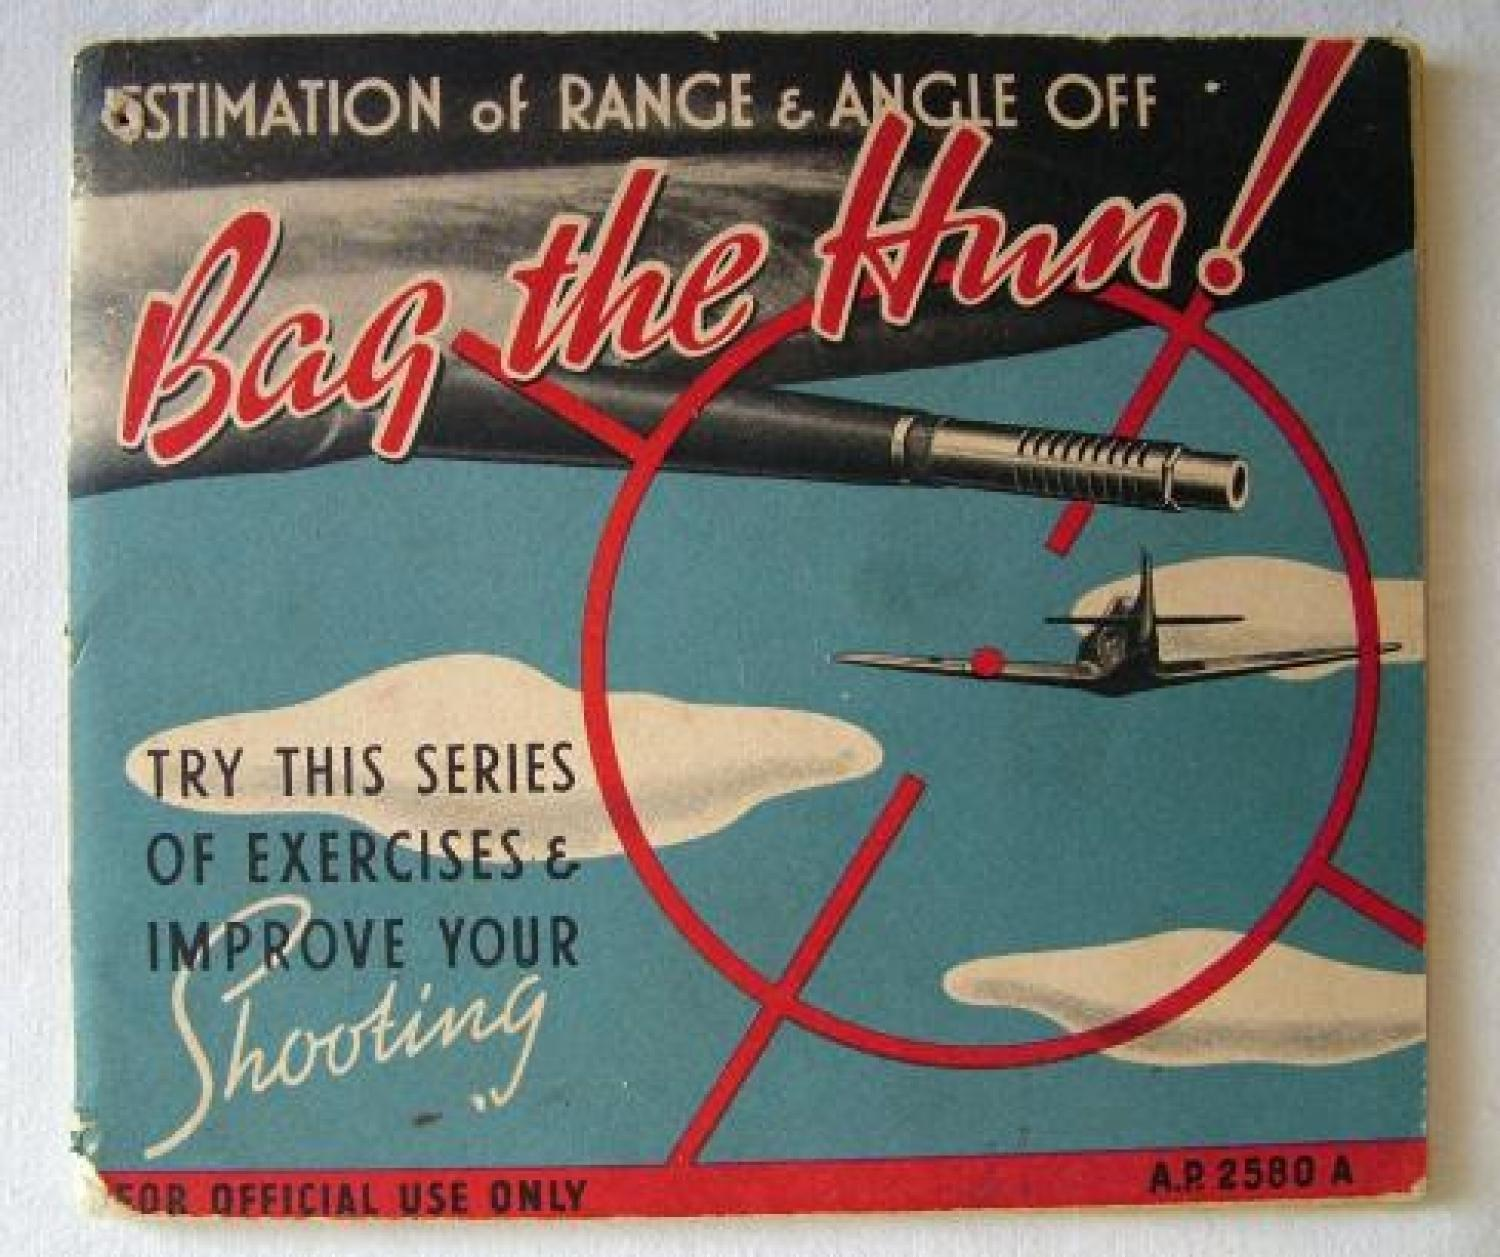 Air Ministry Publication - 'Bag The Hun!'